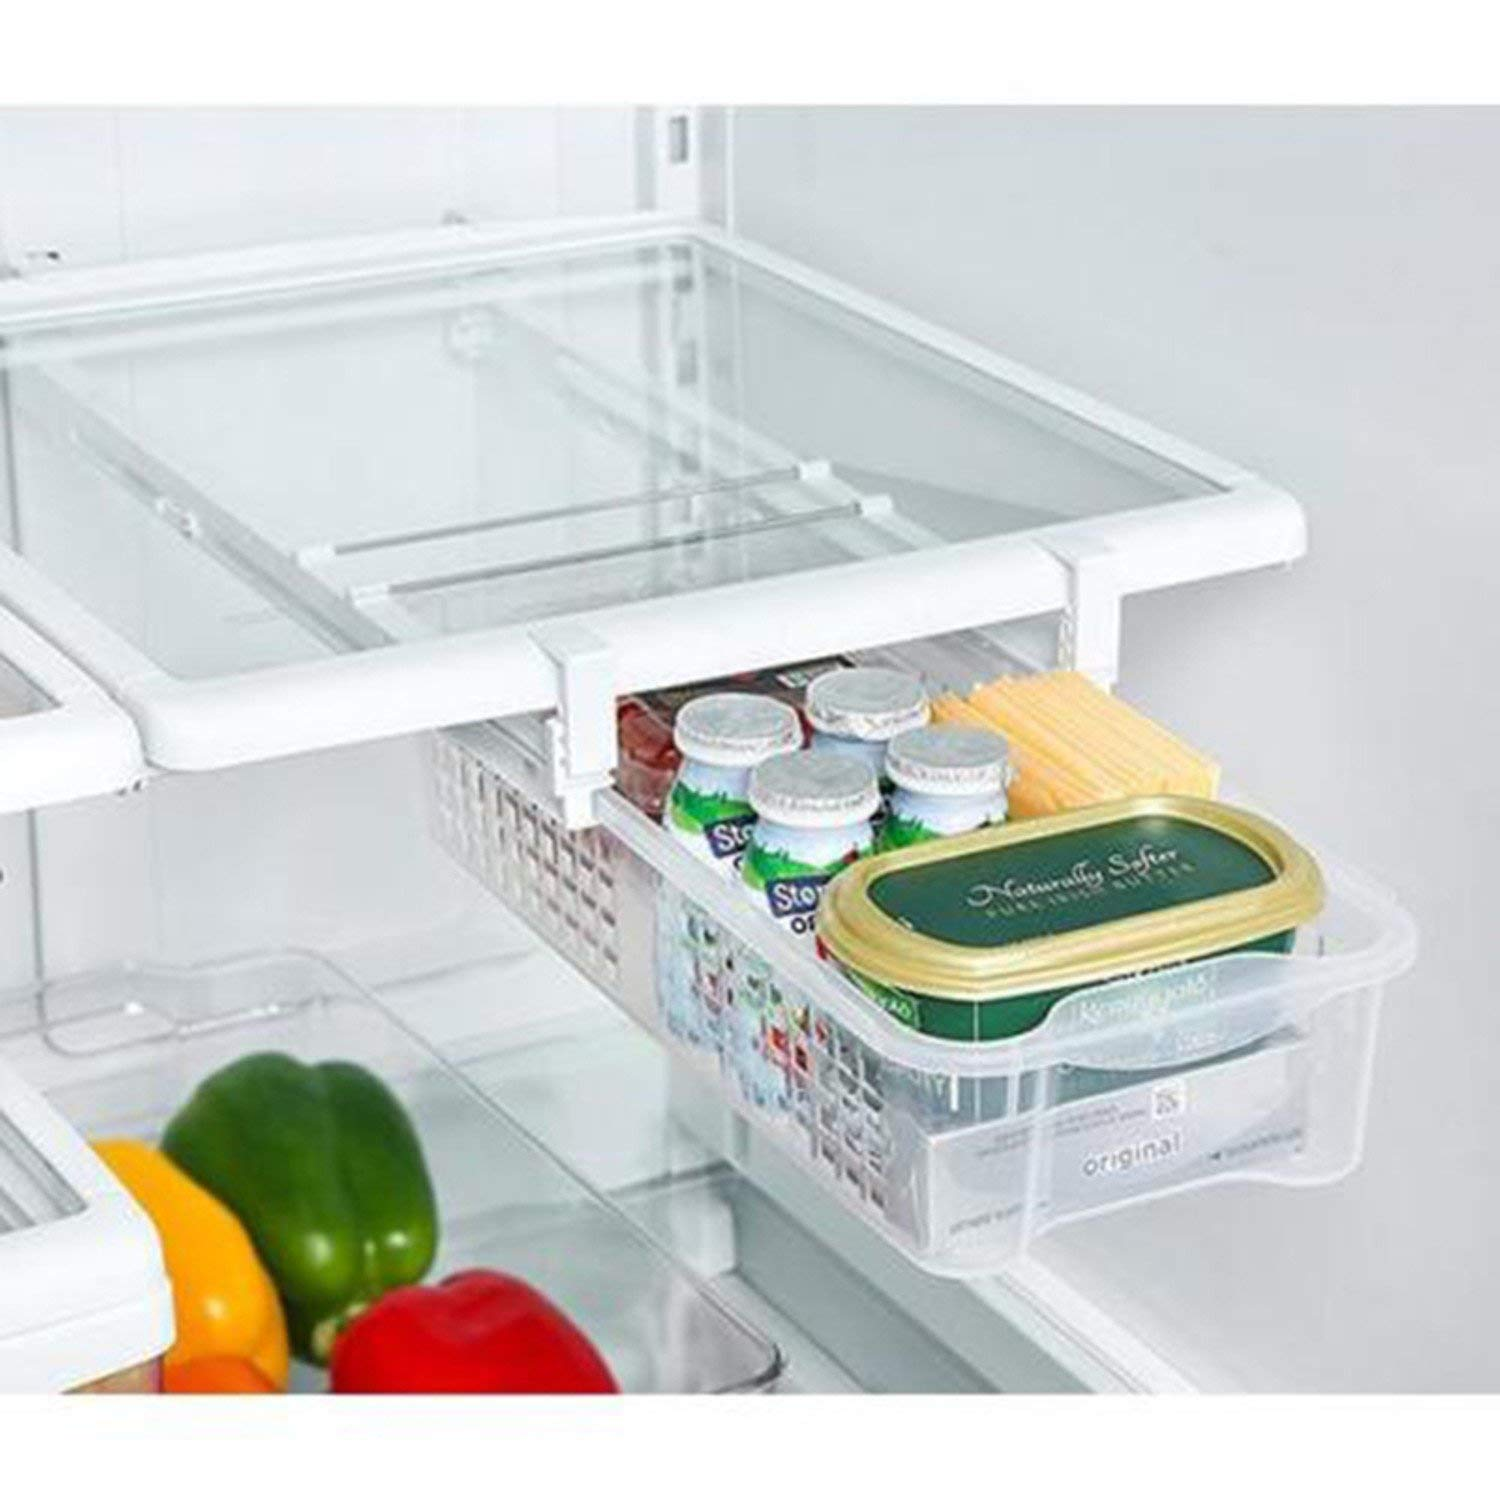 Refrigerator Pull Out Bins Snap On Drawer Fridge Mate Shelves Storage Organizer Refrigerator Storage Box Fridge Organizer Bins